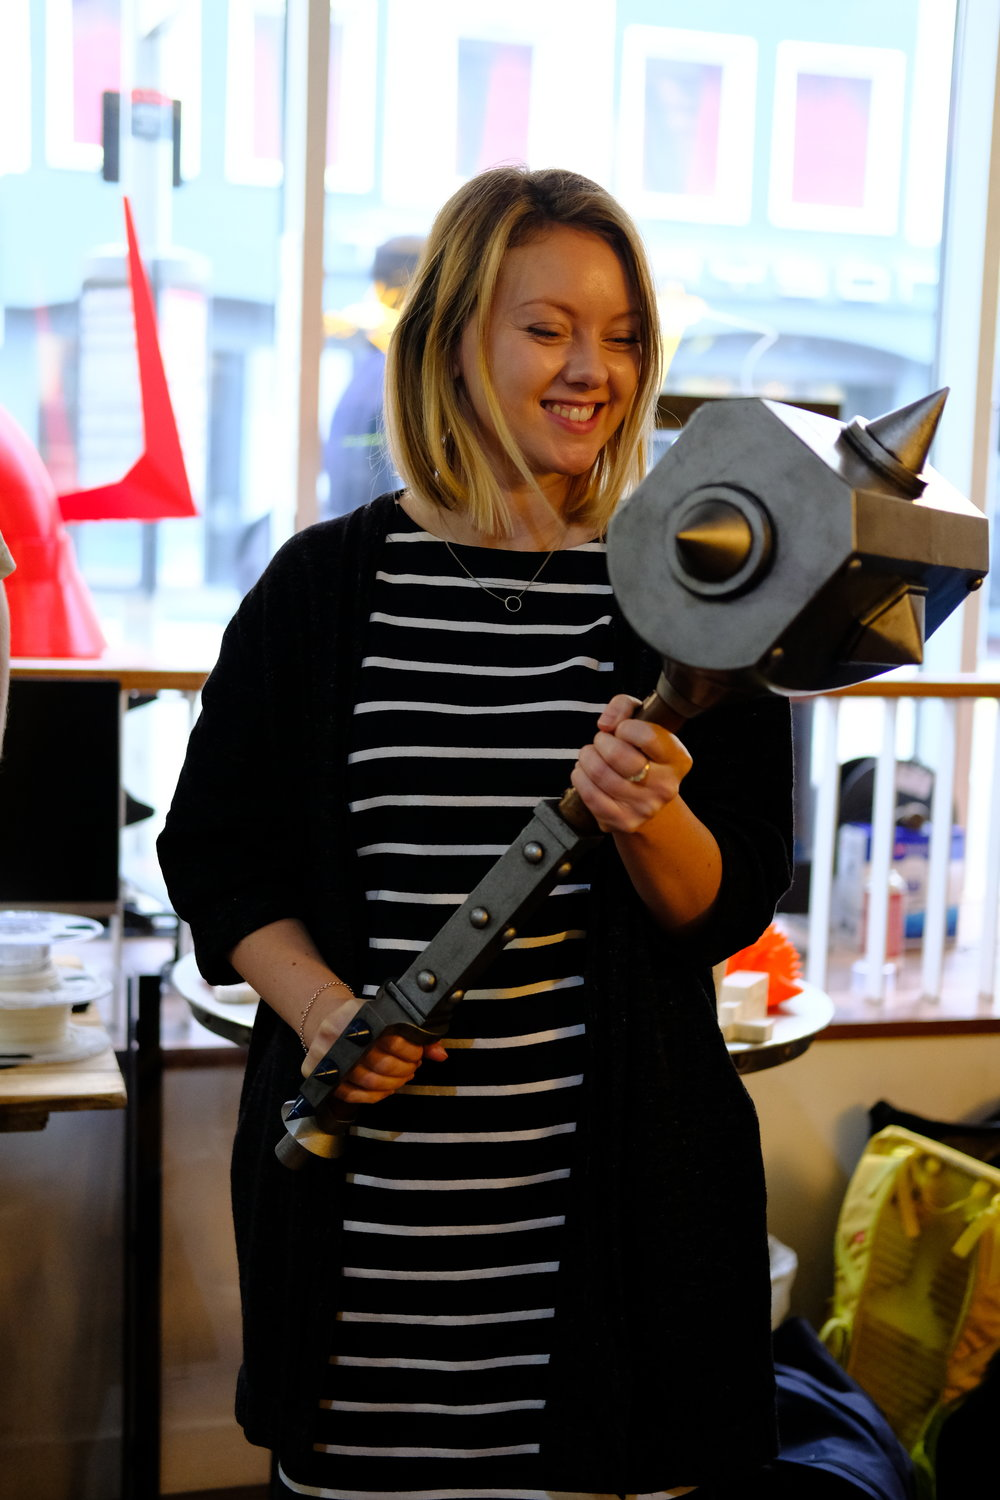 Claire with a really big hammer.